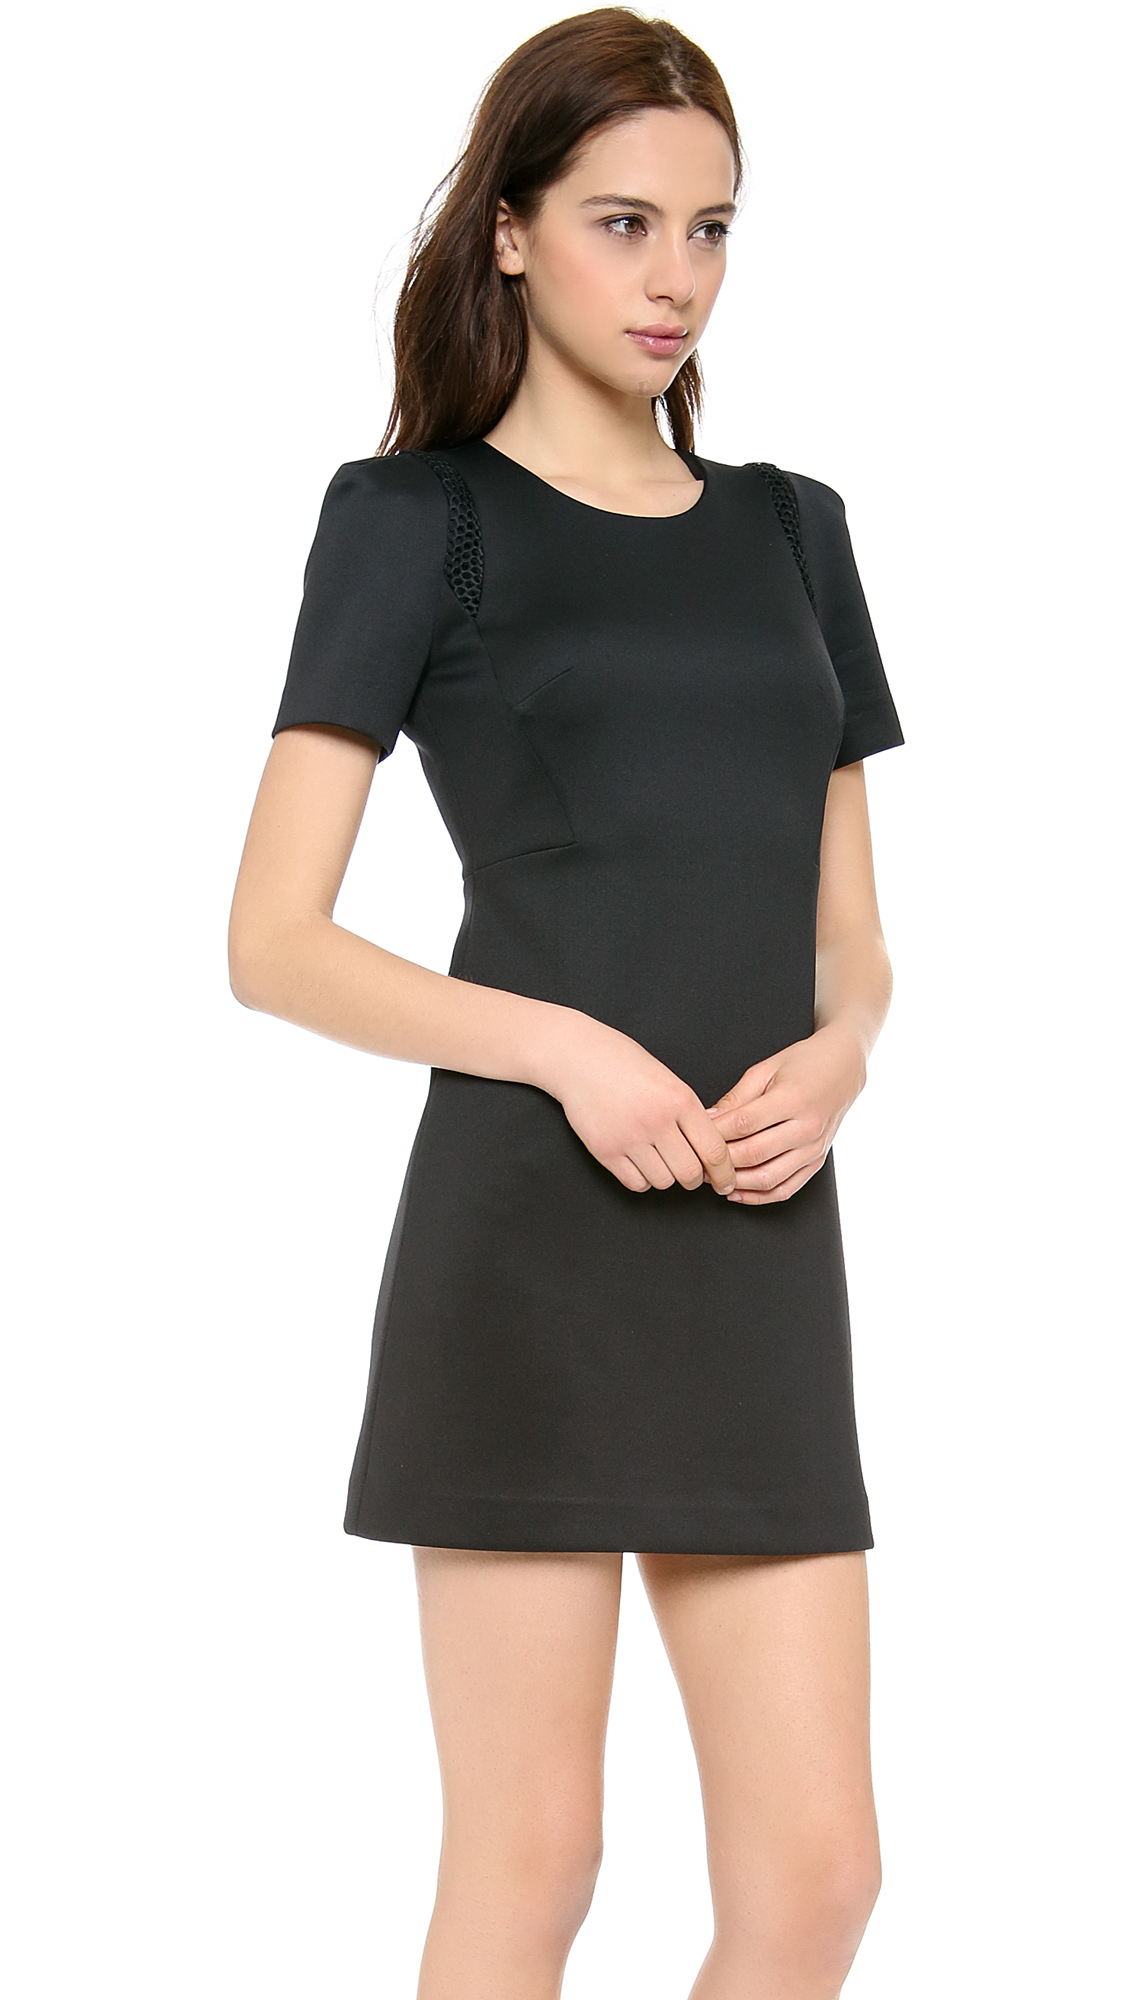 Milly Short Sleeve Shift Dress in Black | Lyst